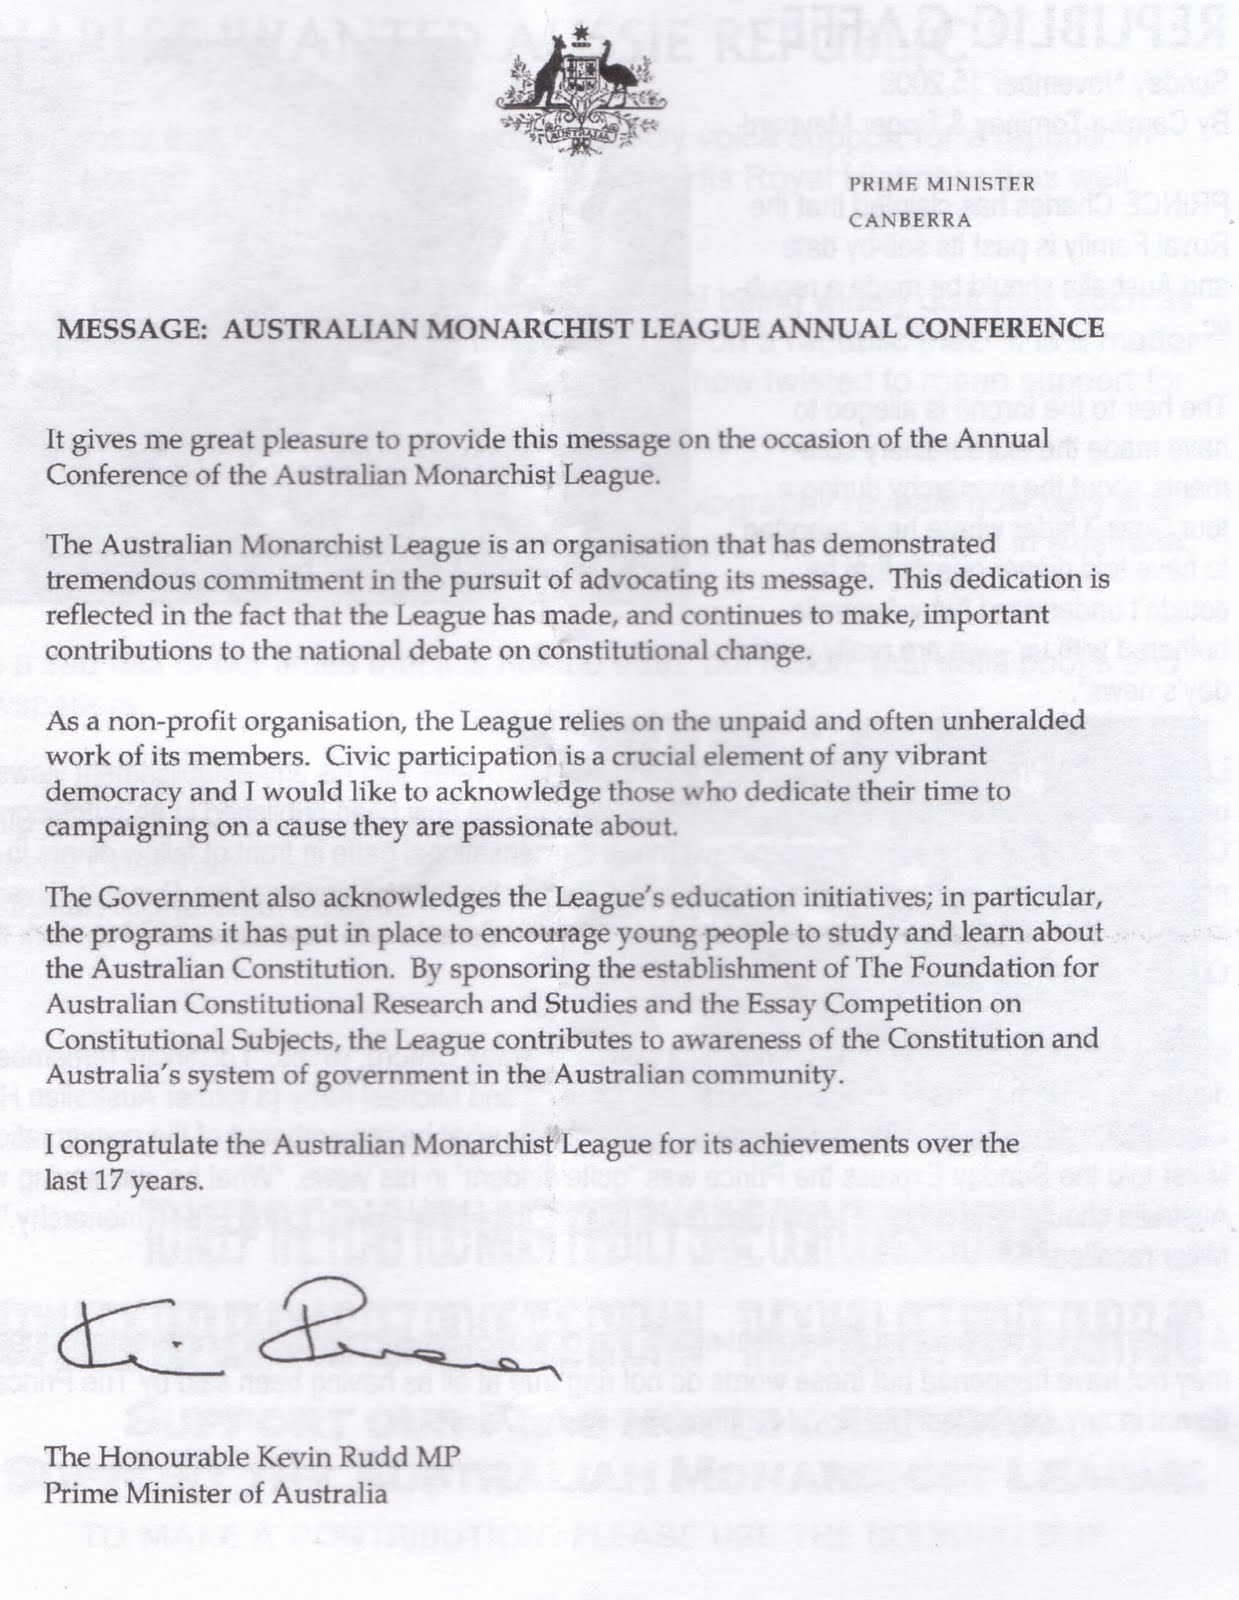 radical royalist  kevin rudd had sent a message to the conference which is full of surprises see for yourself